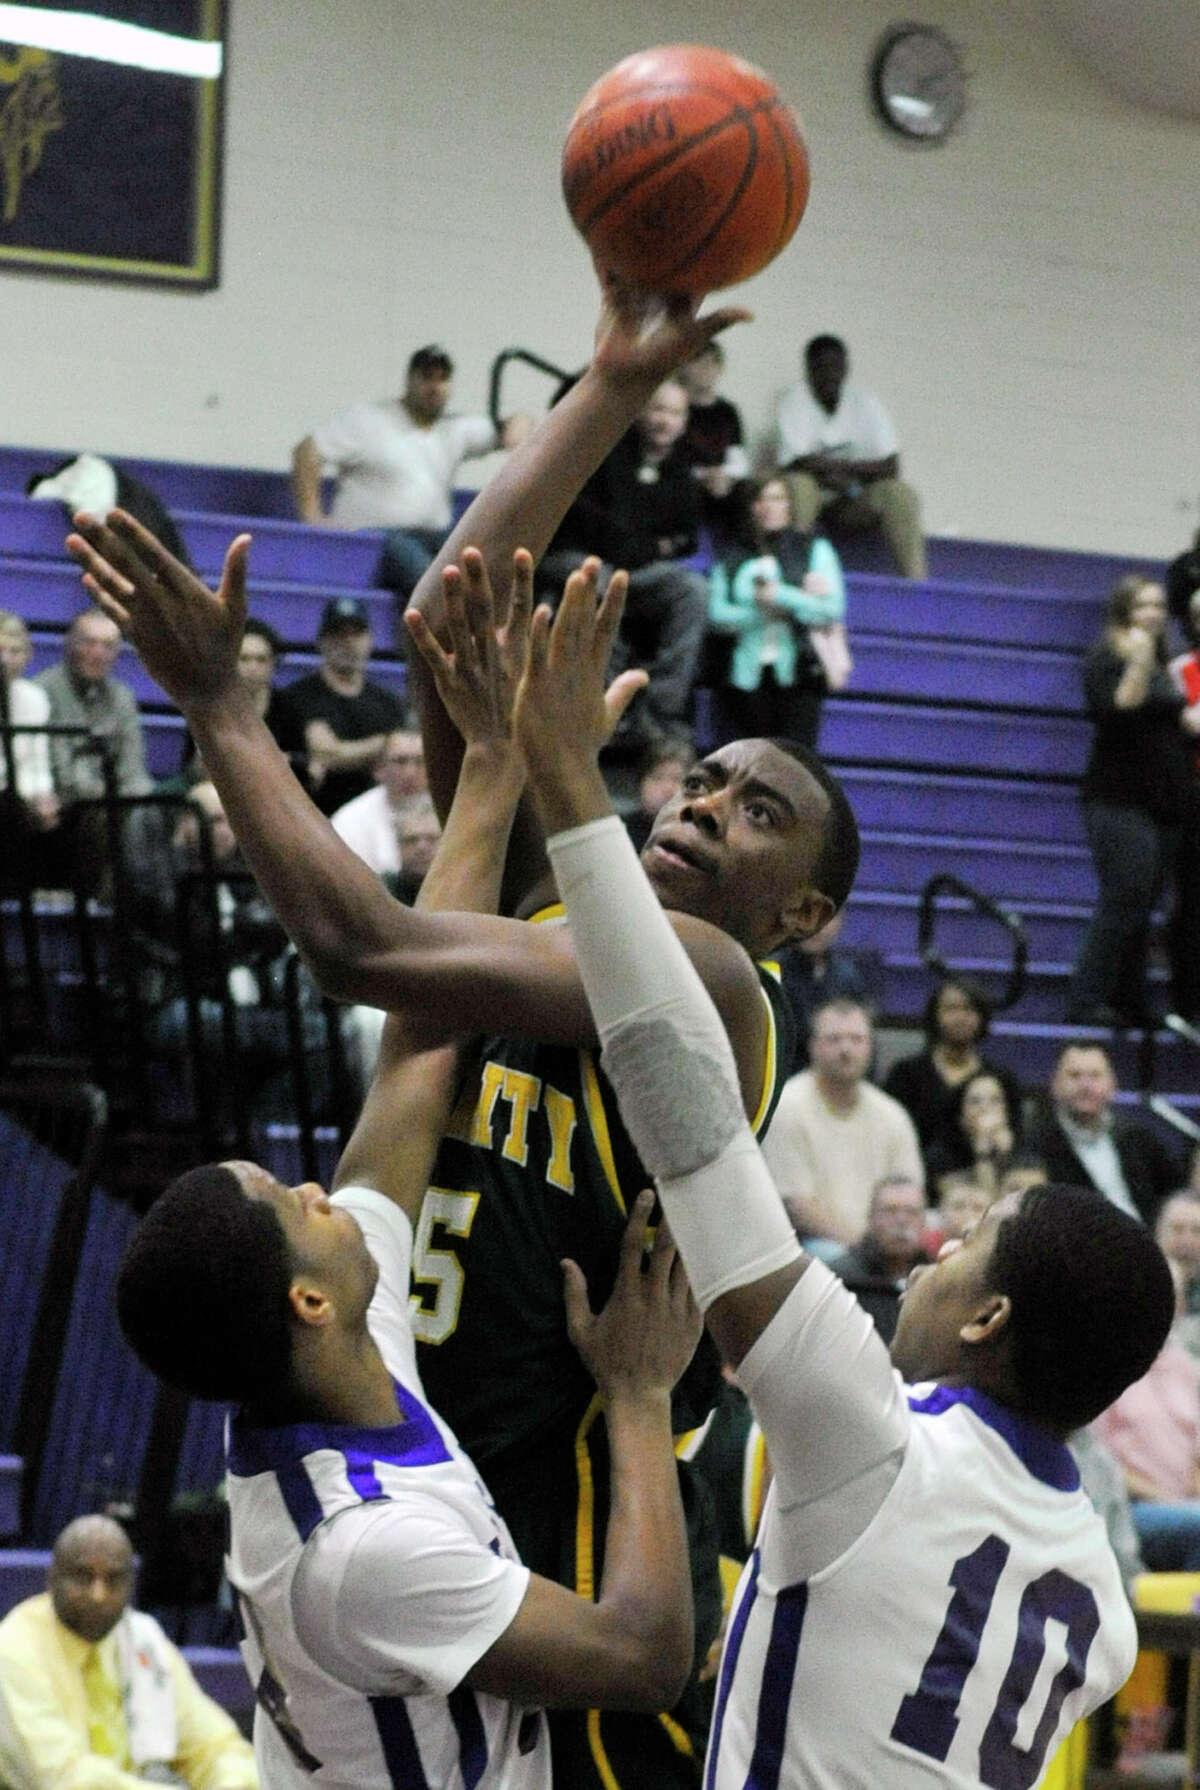 Trinity Catholic's Brandon Wheeler shoots over Westhill's Ariel DelaCruz, left, and Yveson Cassamajor during their City Championship game at Westhill High School in Stamford on Thursday, Feb. 14, 2013. Trinity Catholic won, 62-46.